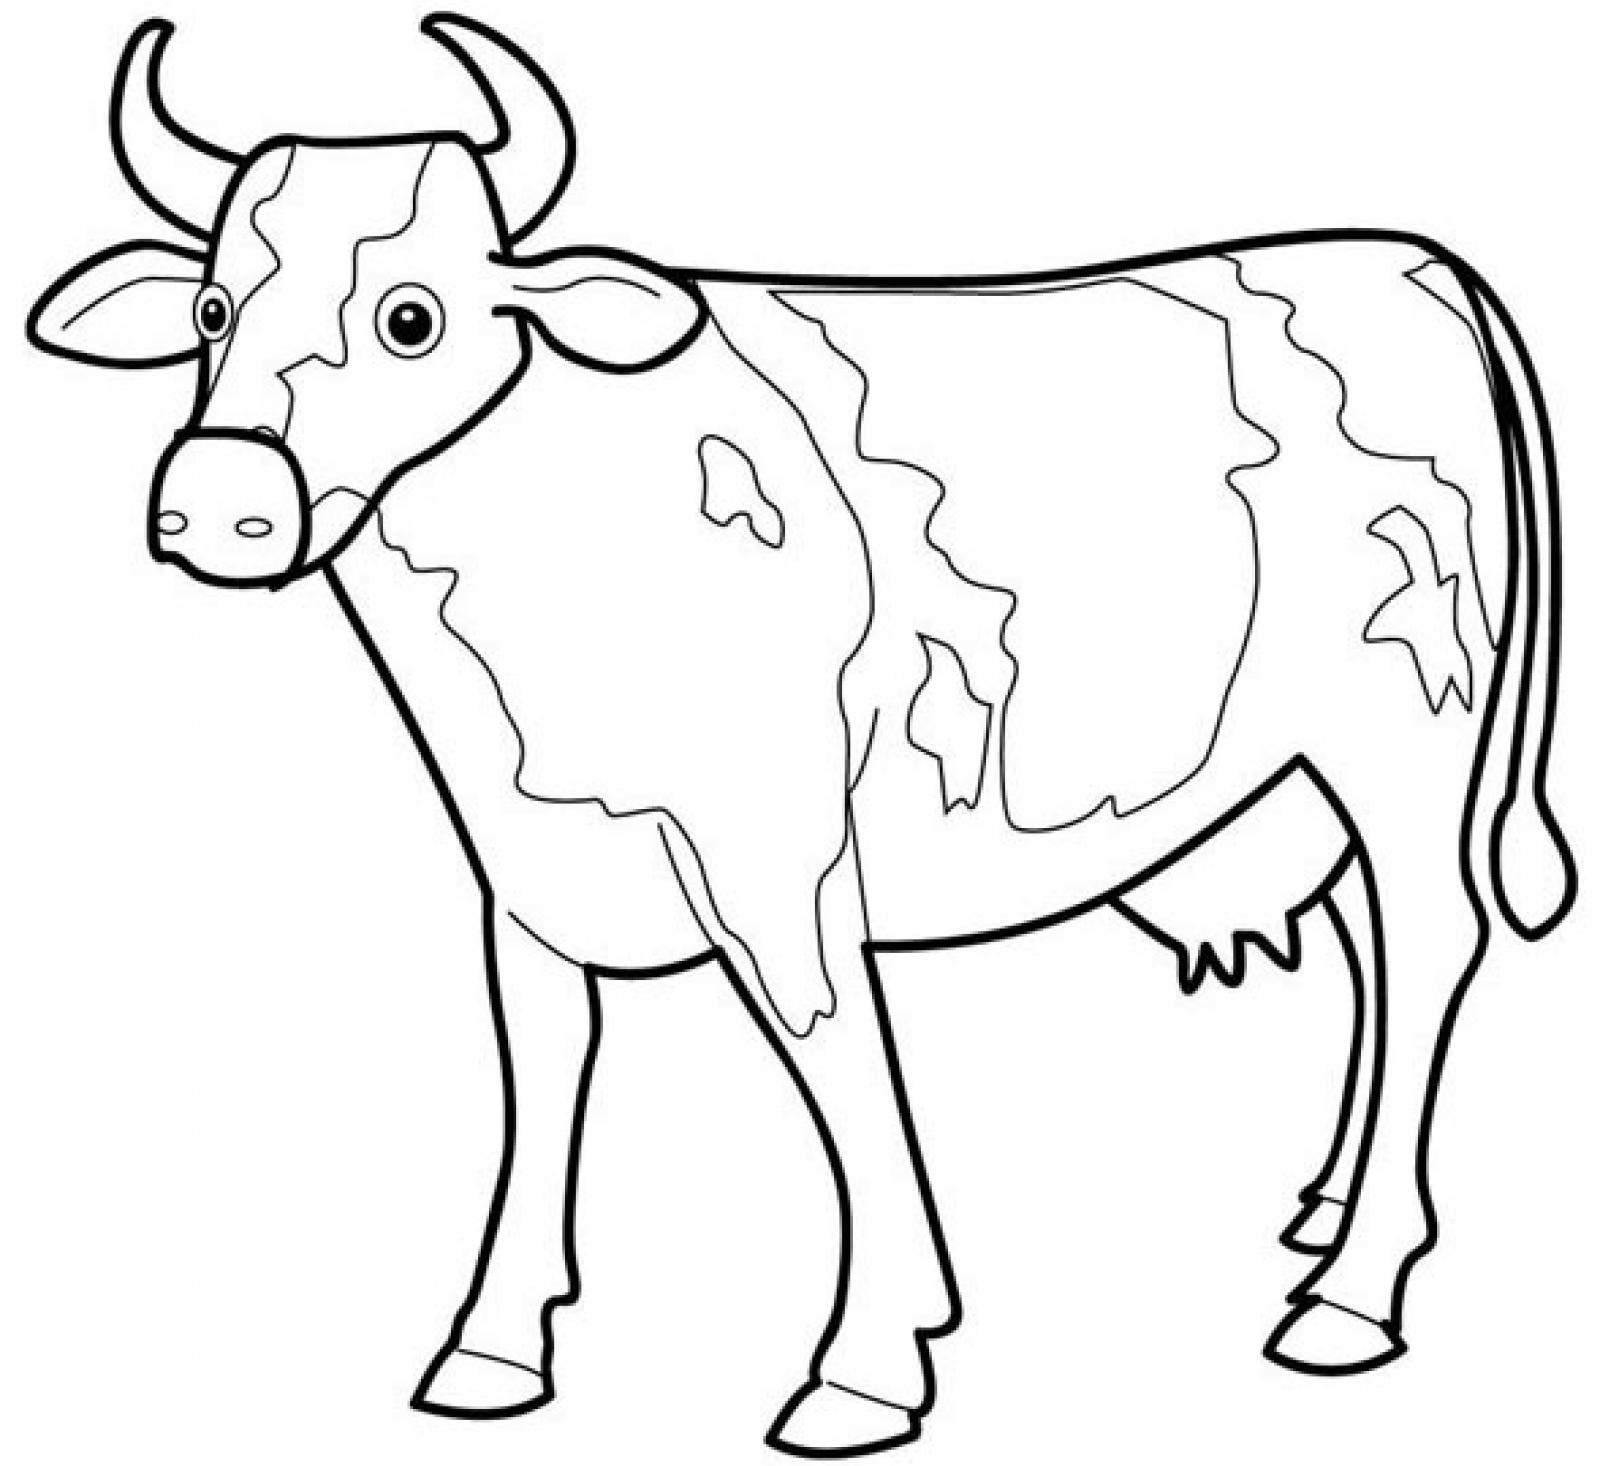 cow coloring pages print - photo#15